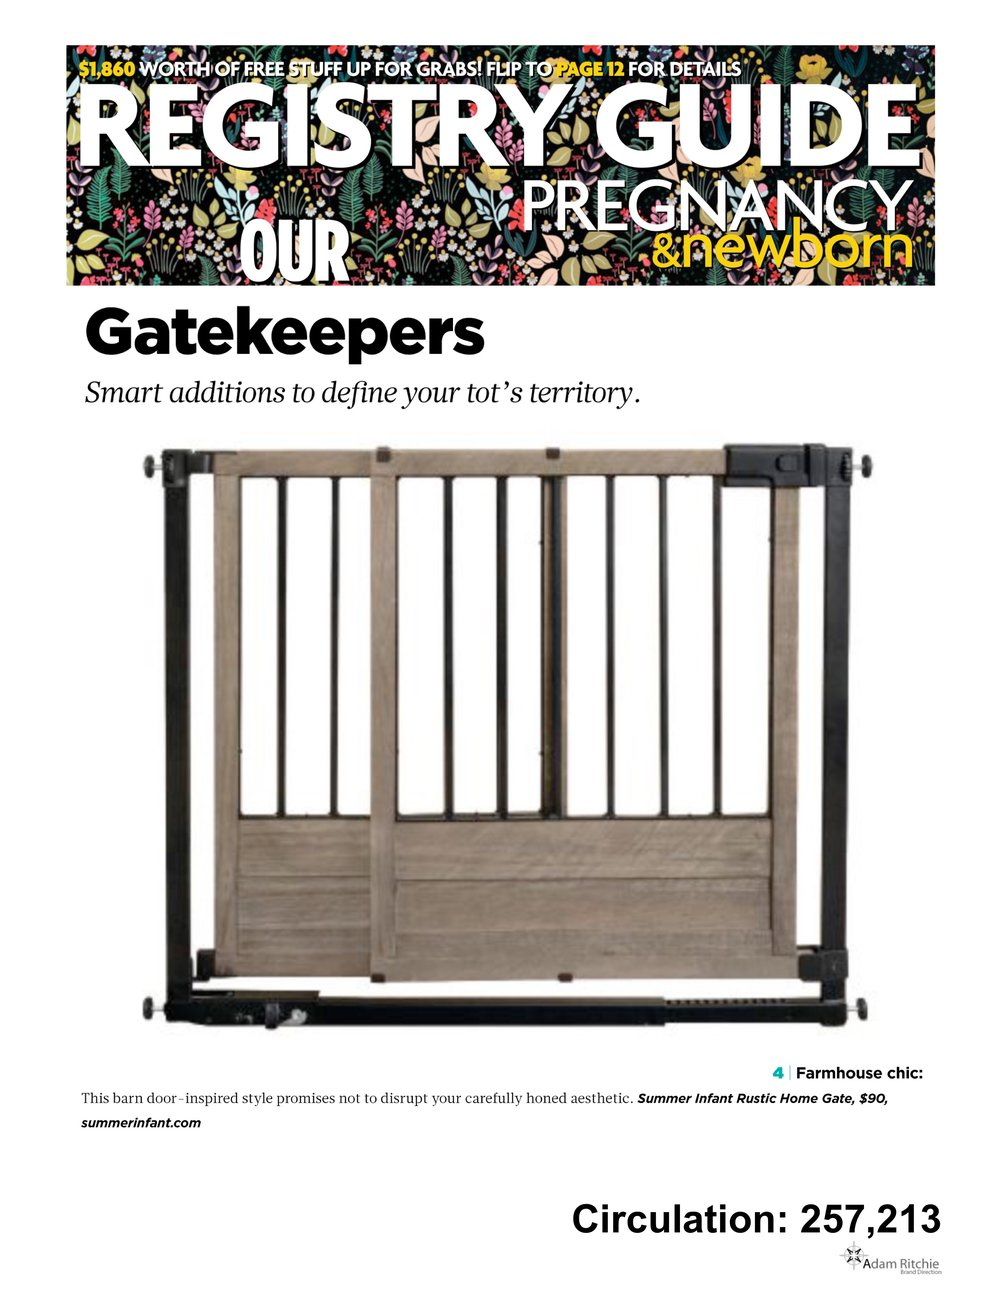 2018.04.00-07.00_Pregnancy & Newborn_Spring Registry Guide_Summer Infant Rustic Home Gate.jpeg